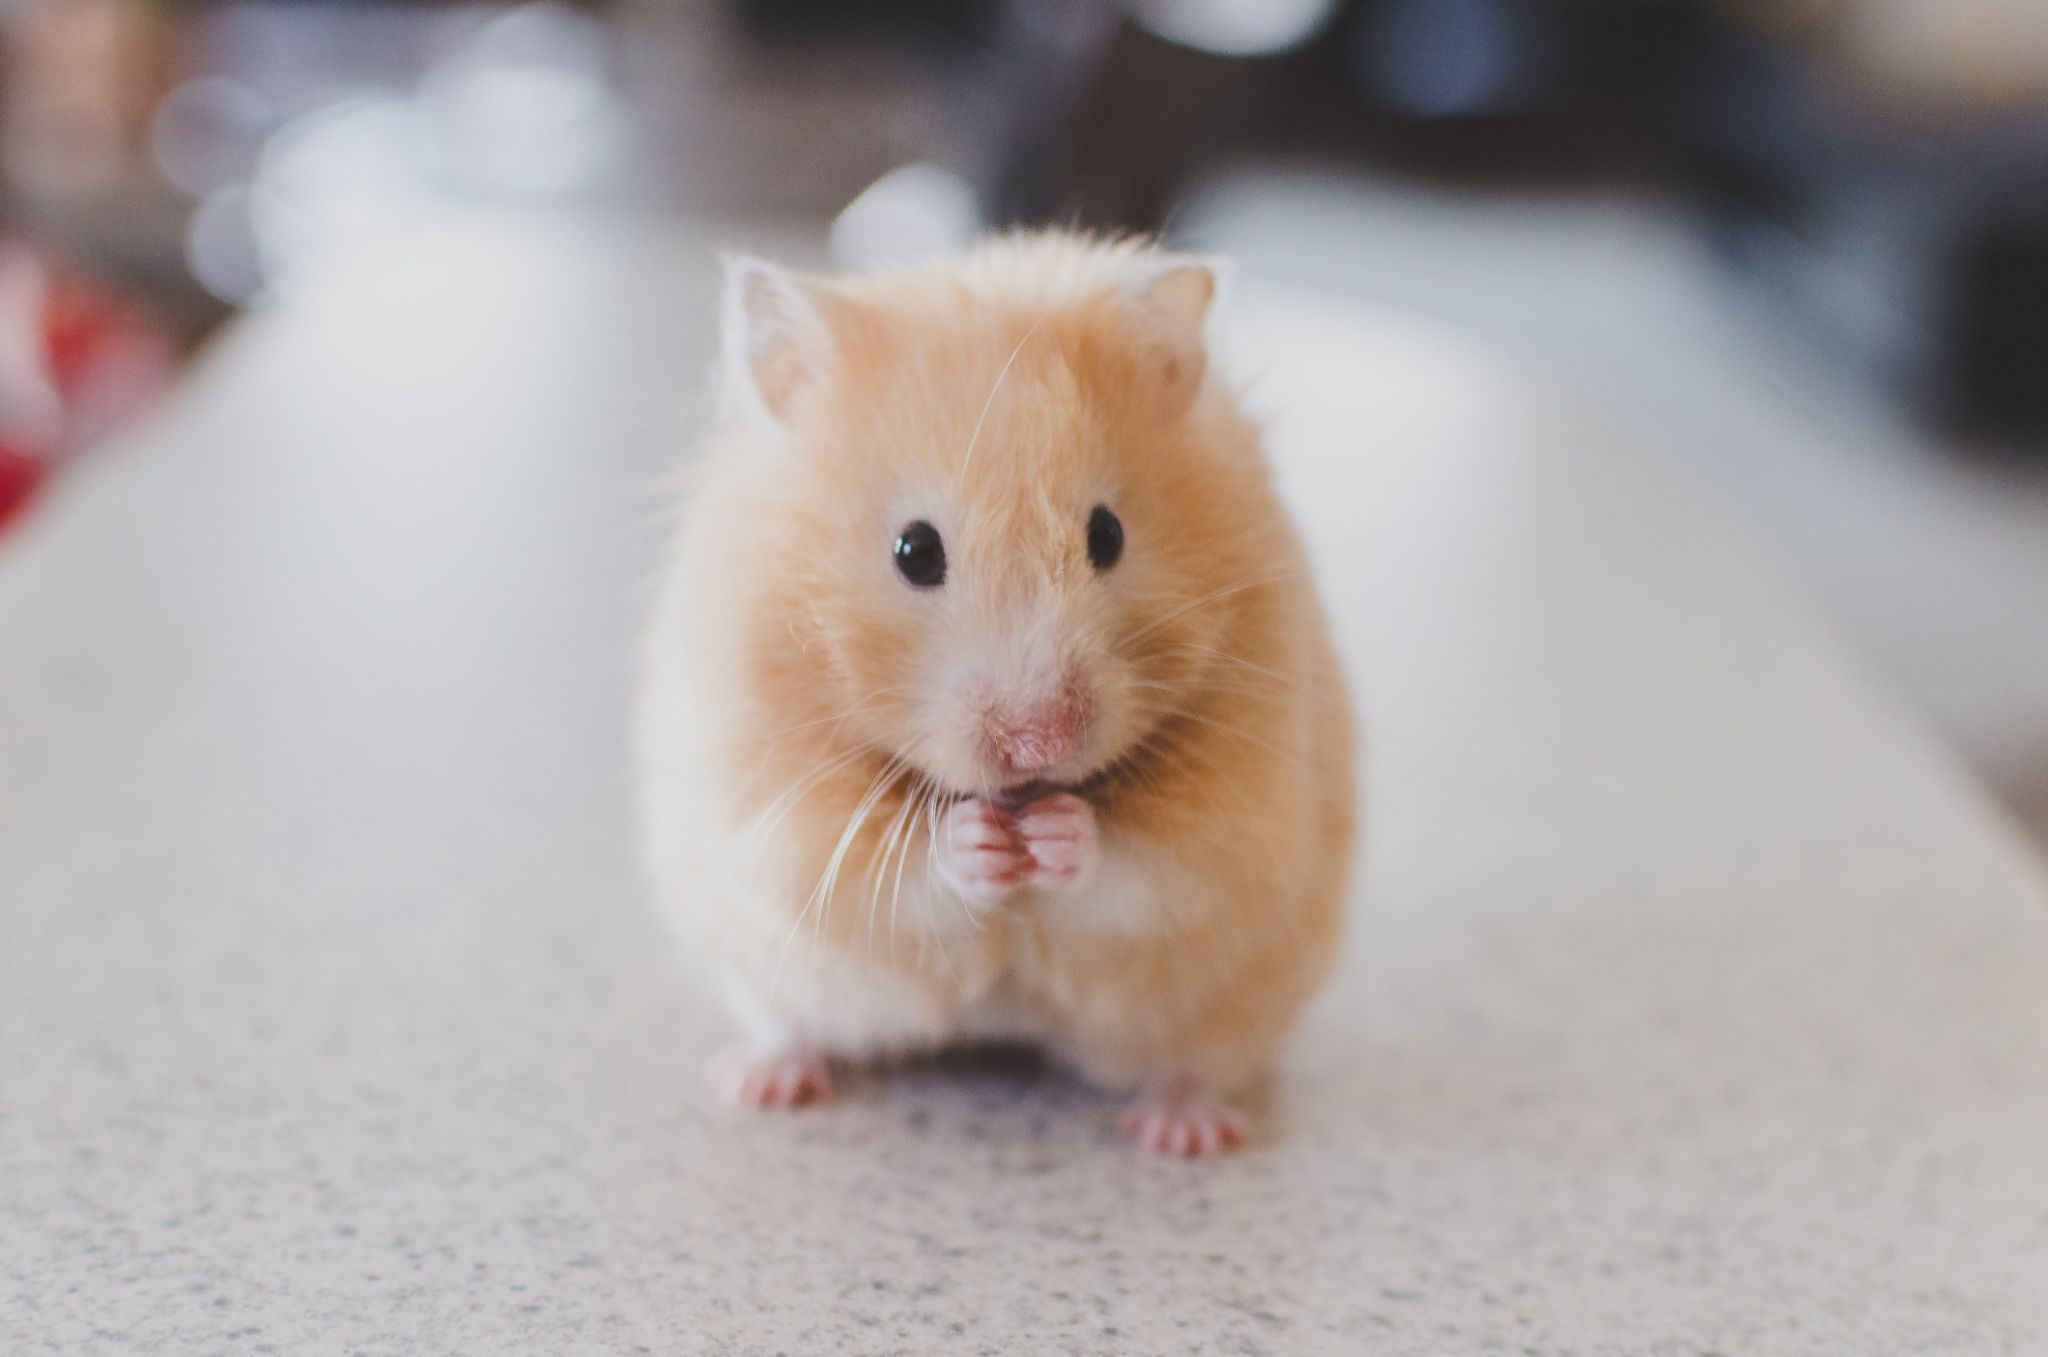 Lectures on the pros and cons of animal testing at Manchester University, The Manc